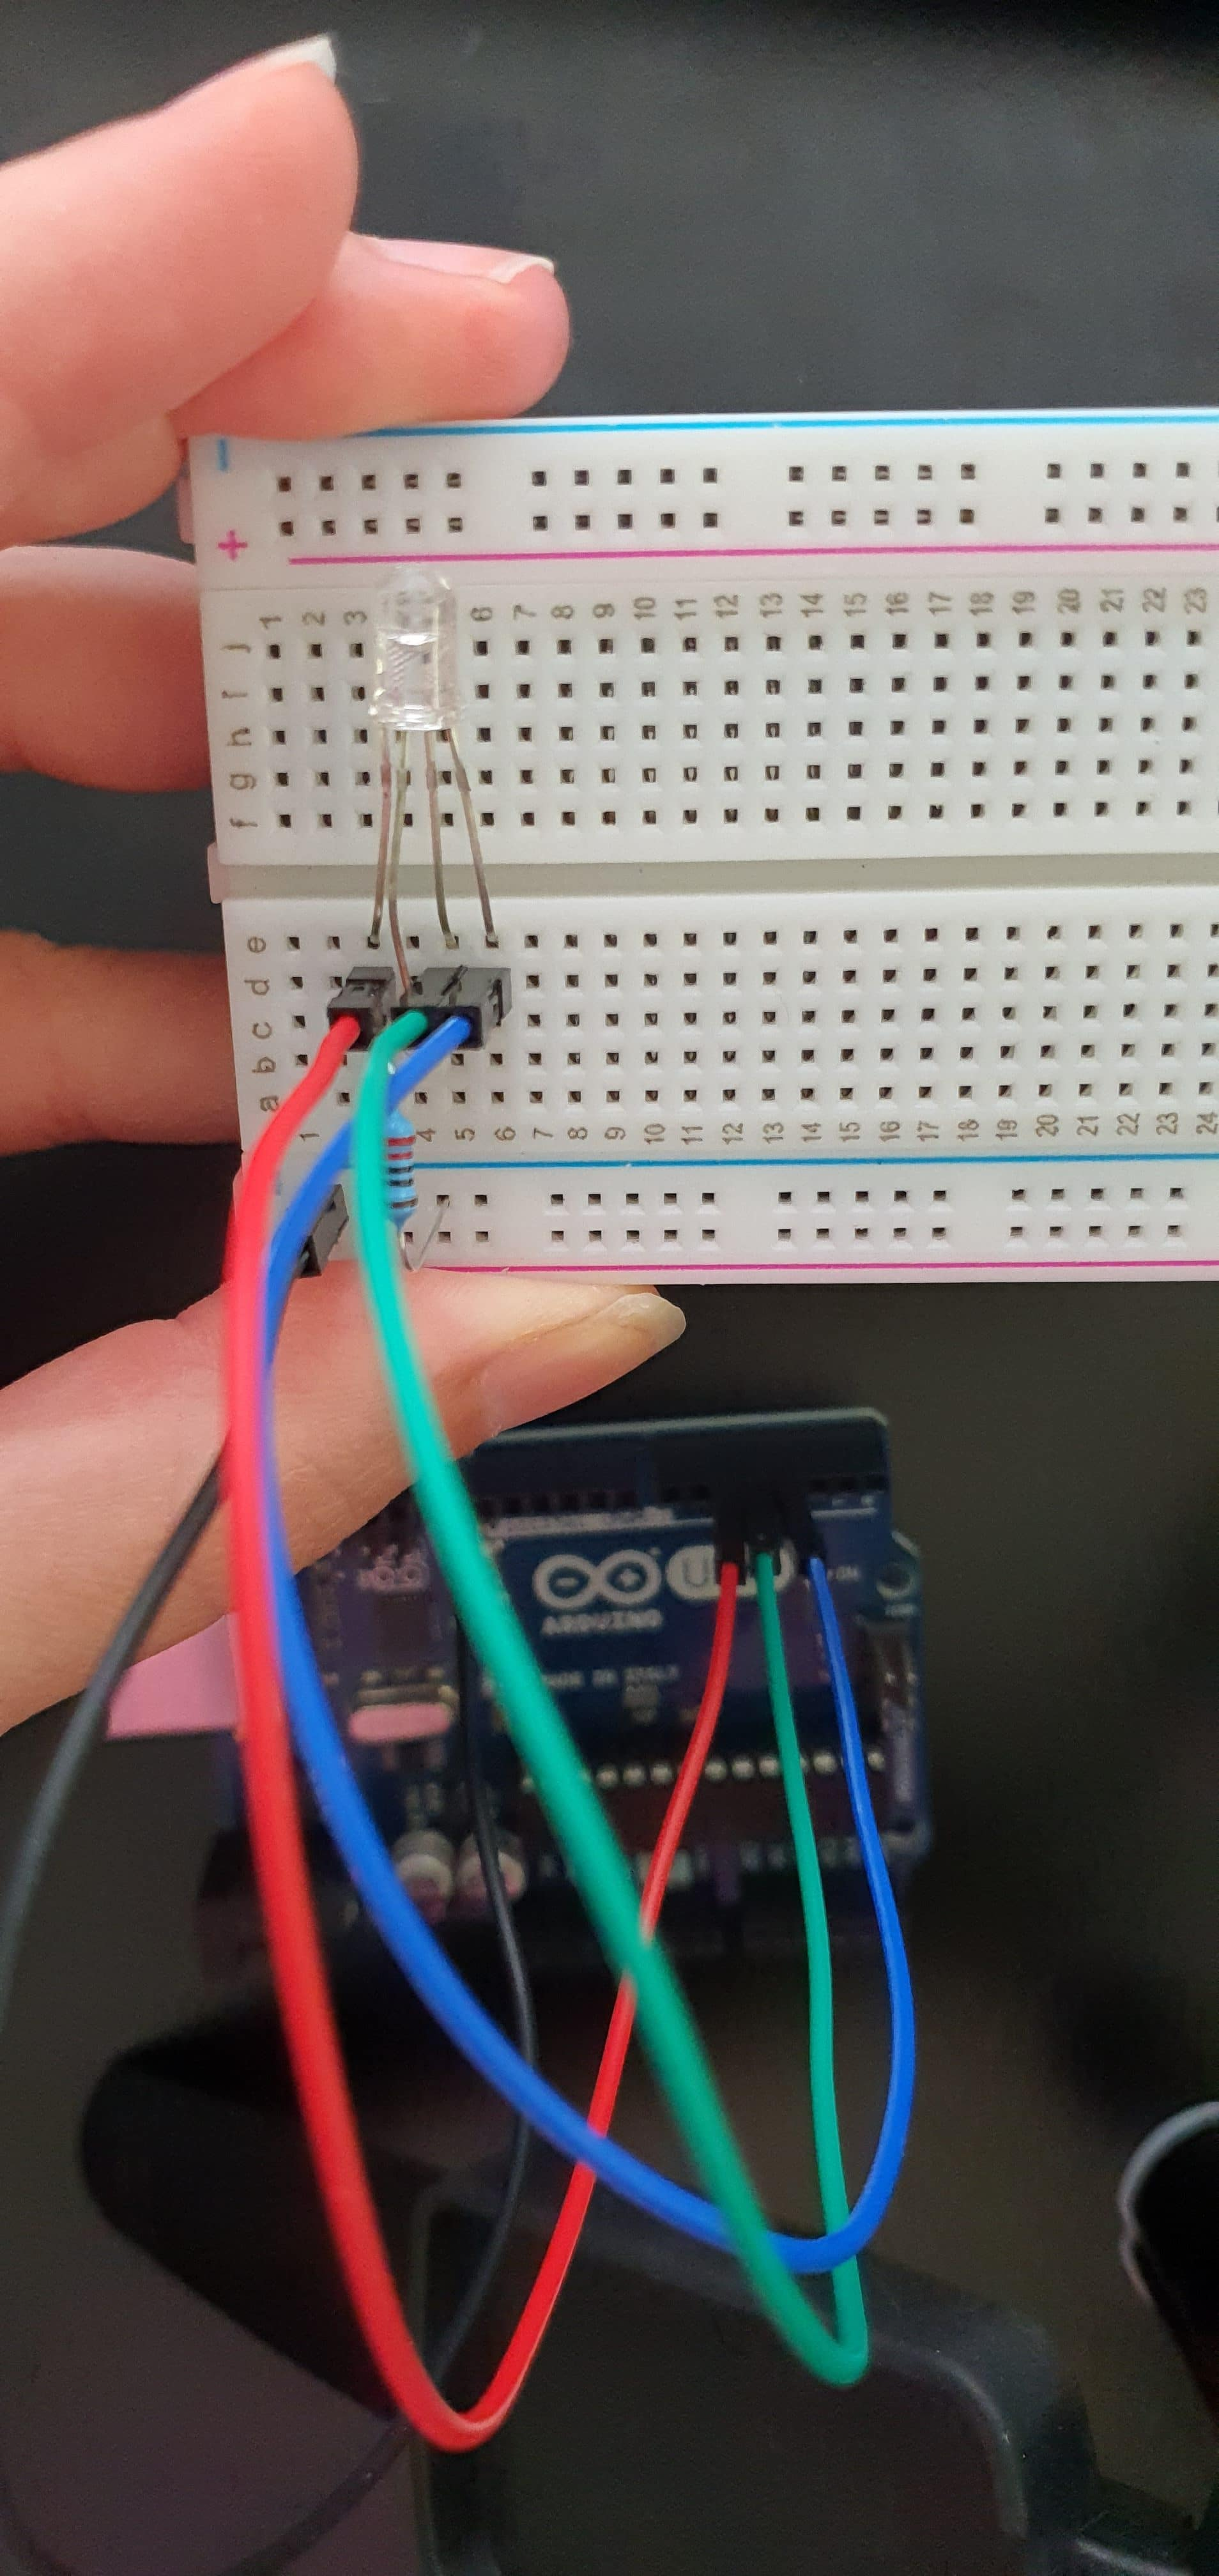 Three wires connected to an Arduino and an electronics breadboard